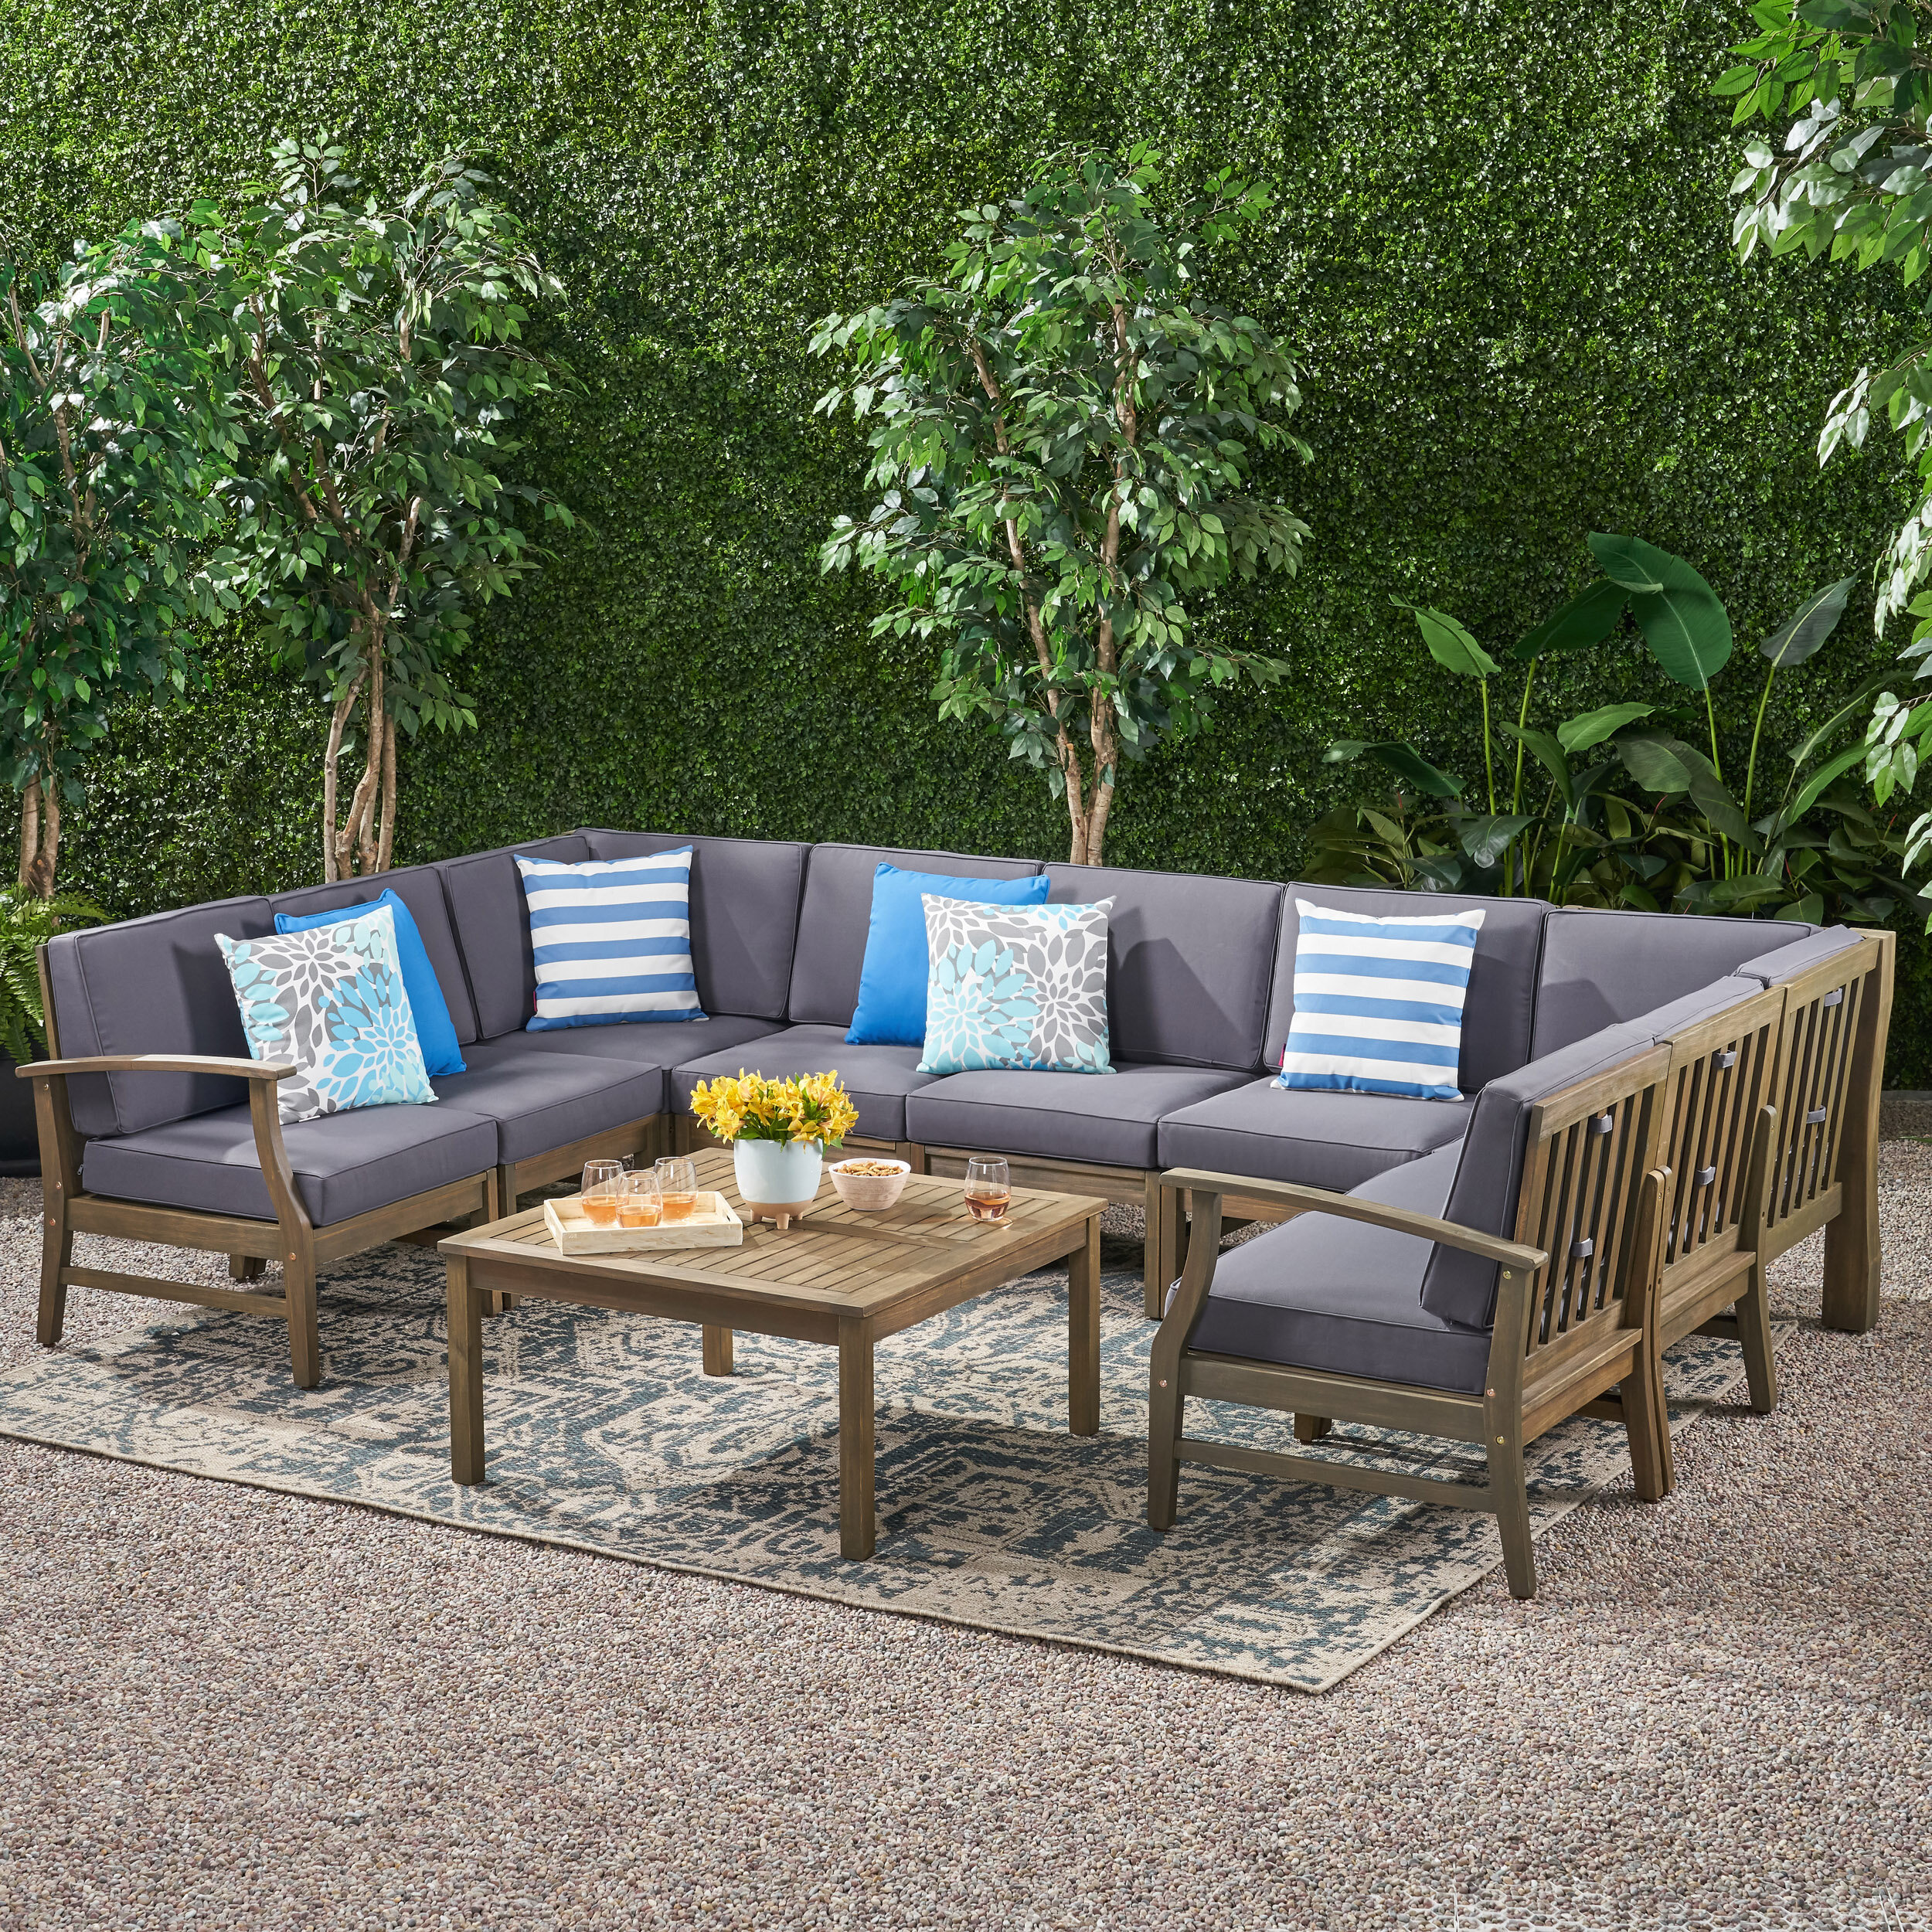 Foundry Select Gianni Outdoor 10 Piece Sectional Seating Group With Cushions Wayfair